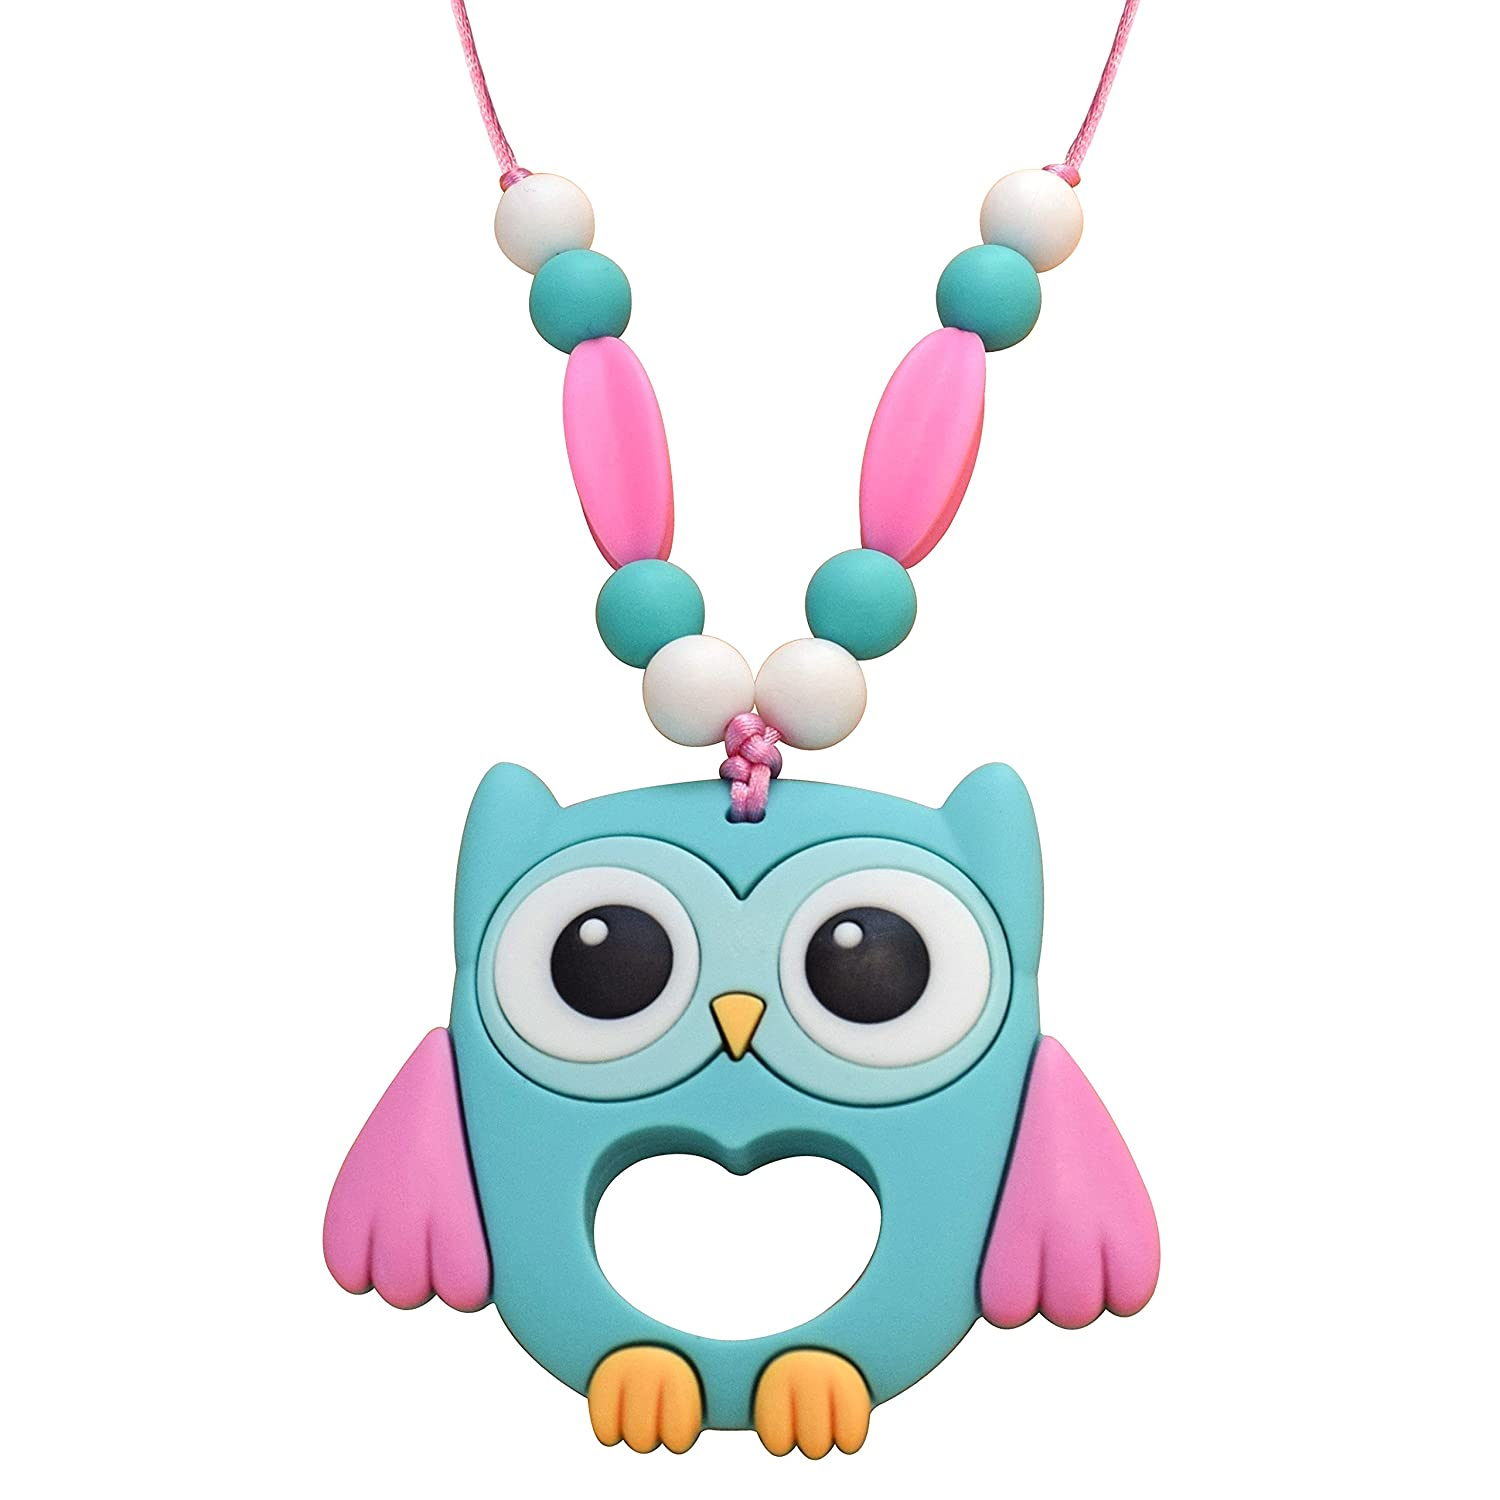 カウくる Munchables Kids Chewelry Necklace Munchables Necklace - Chewable Sensory Munchables Owl Necklace (Aqua) by Munchables Chewelry B01HKAPLHE, 城崎町:451fcd85 --- a0267596.xsph.ru